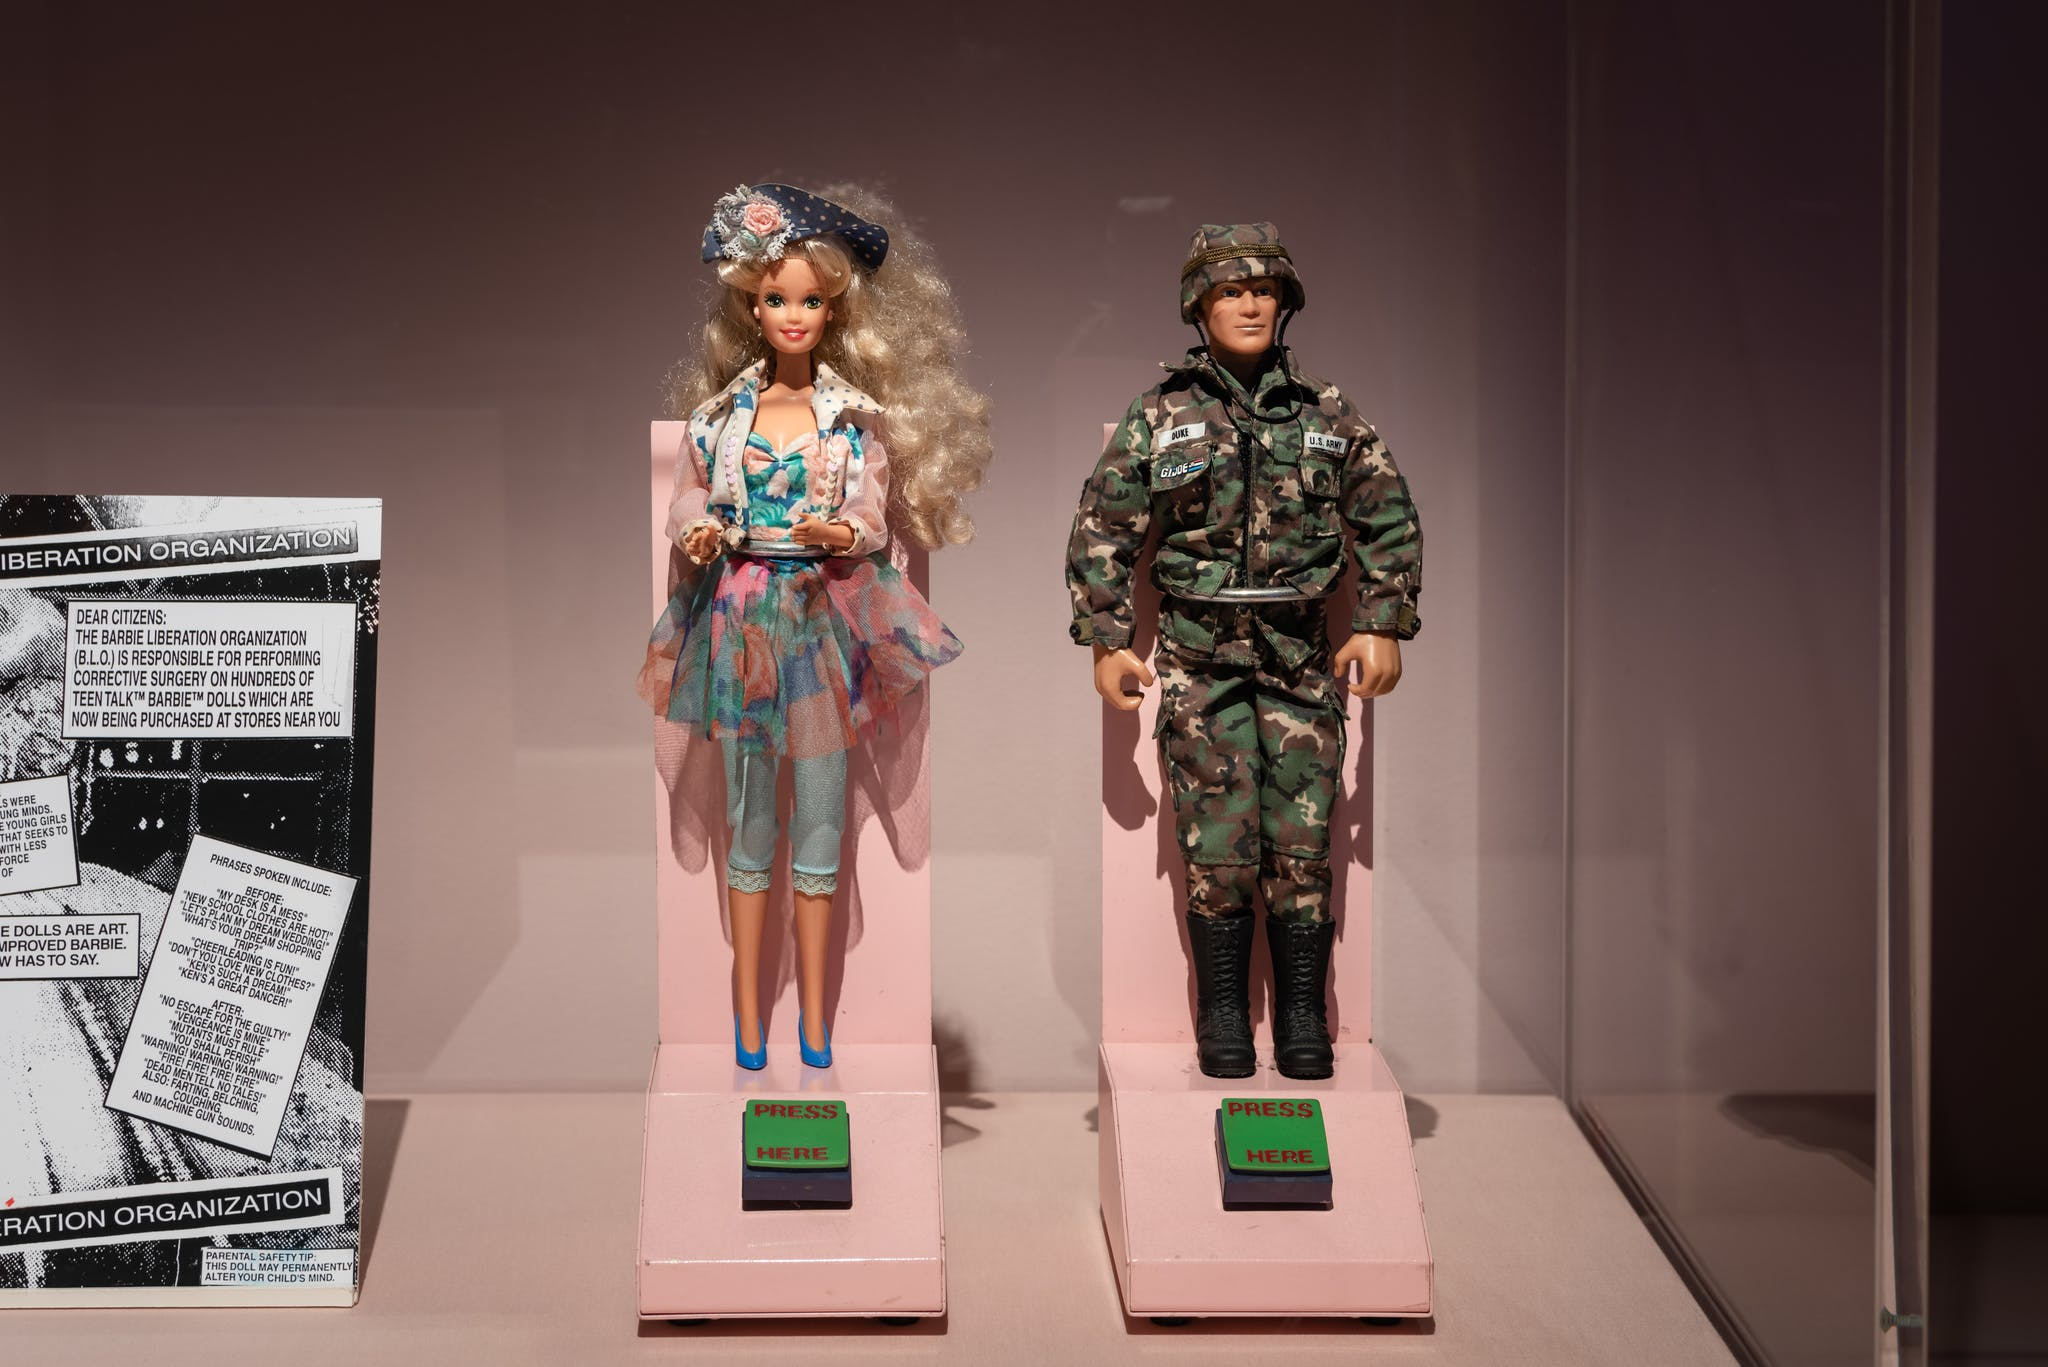 A close up of an exhbition case with a Barbie doll and Ken doll from the 1970s next to a posted about Igor Vamos' Barbie Liberation Organization.